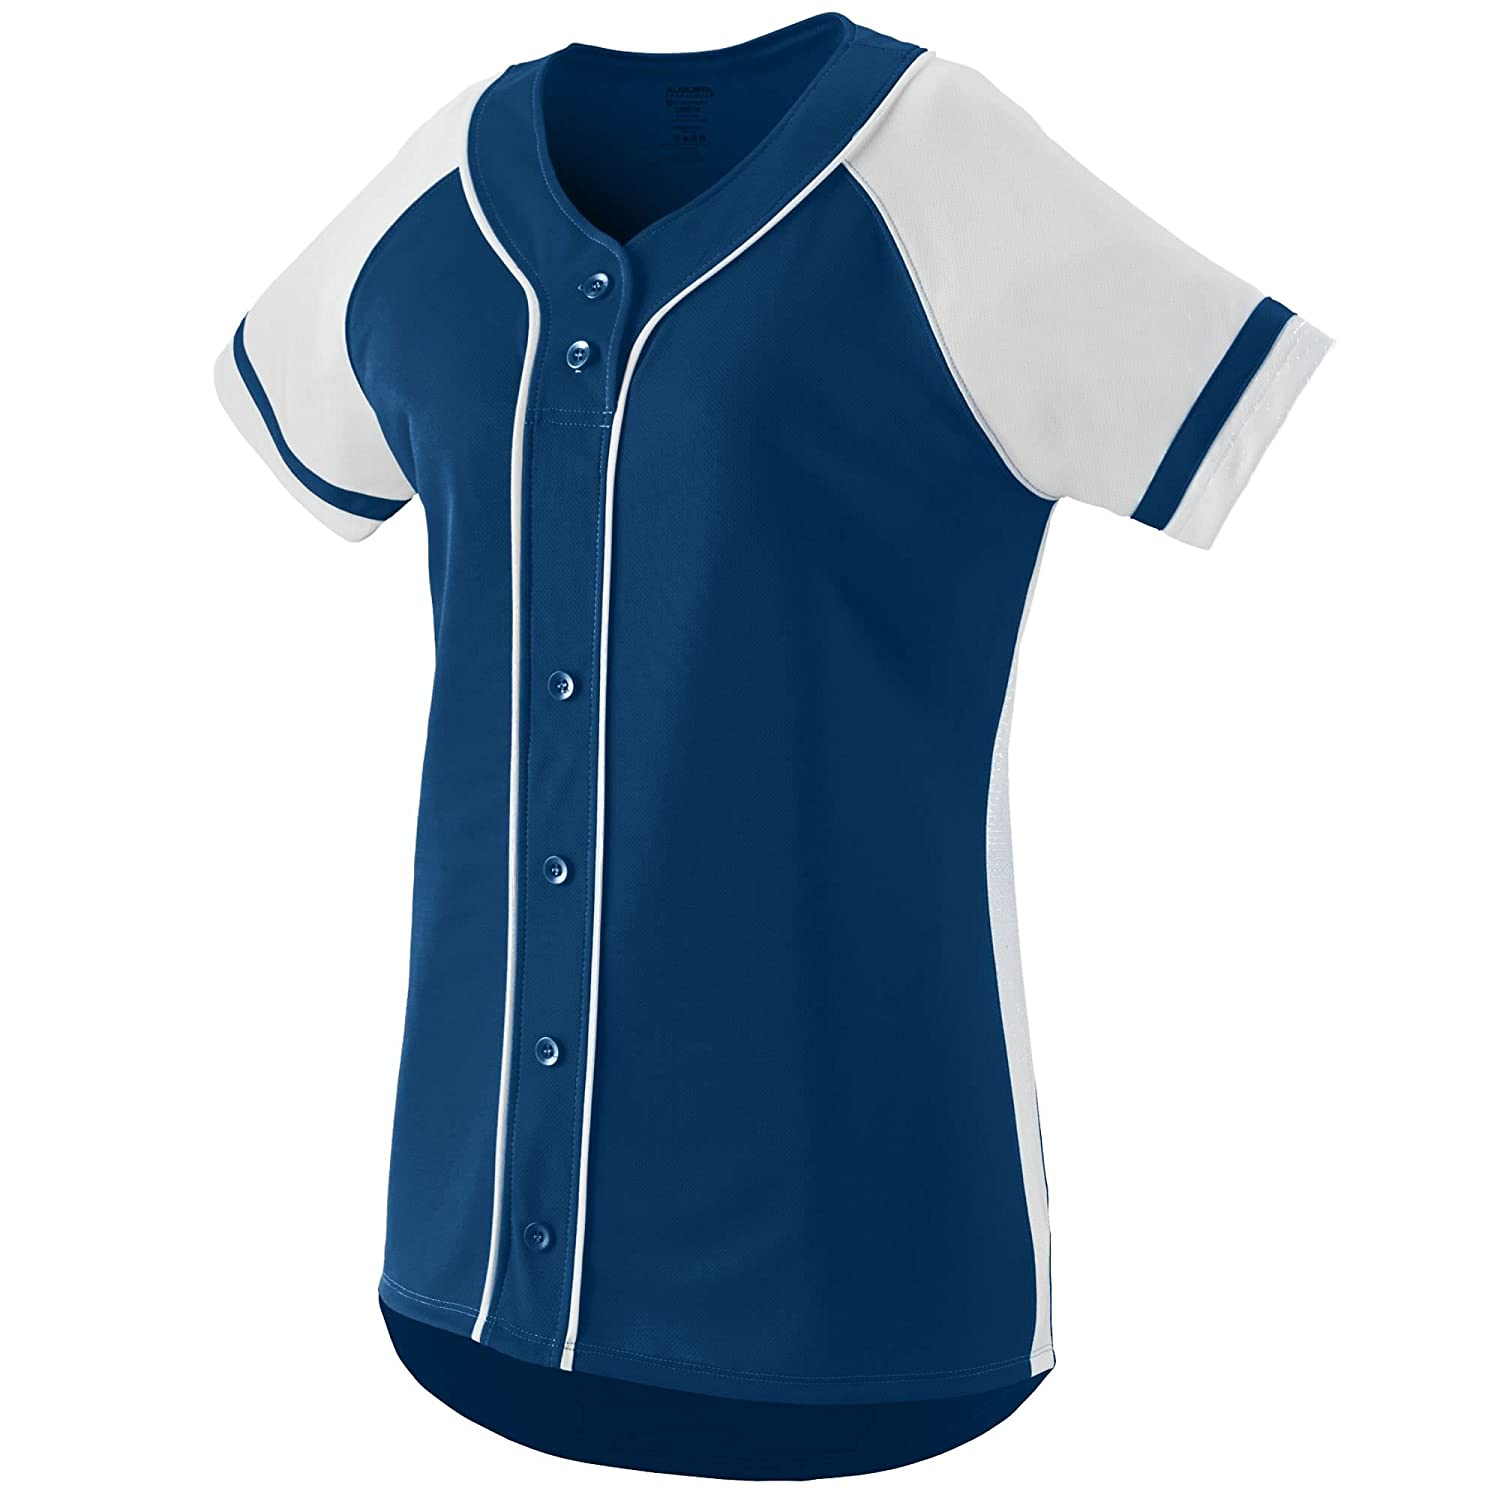 17239e04cd7 Augusta Sportswear Girls  Winner Softball Jersey 1666  1540968538-77654  -   10.76